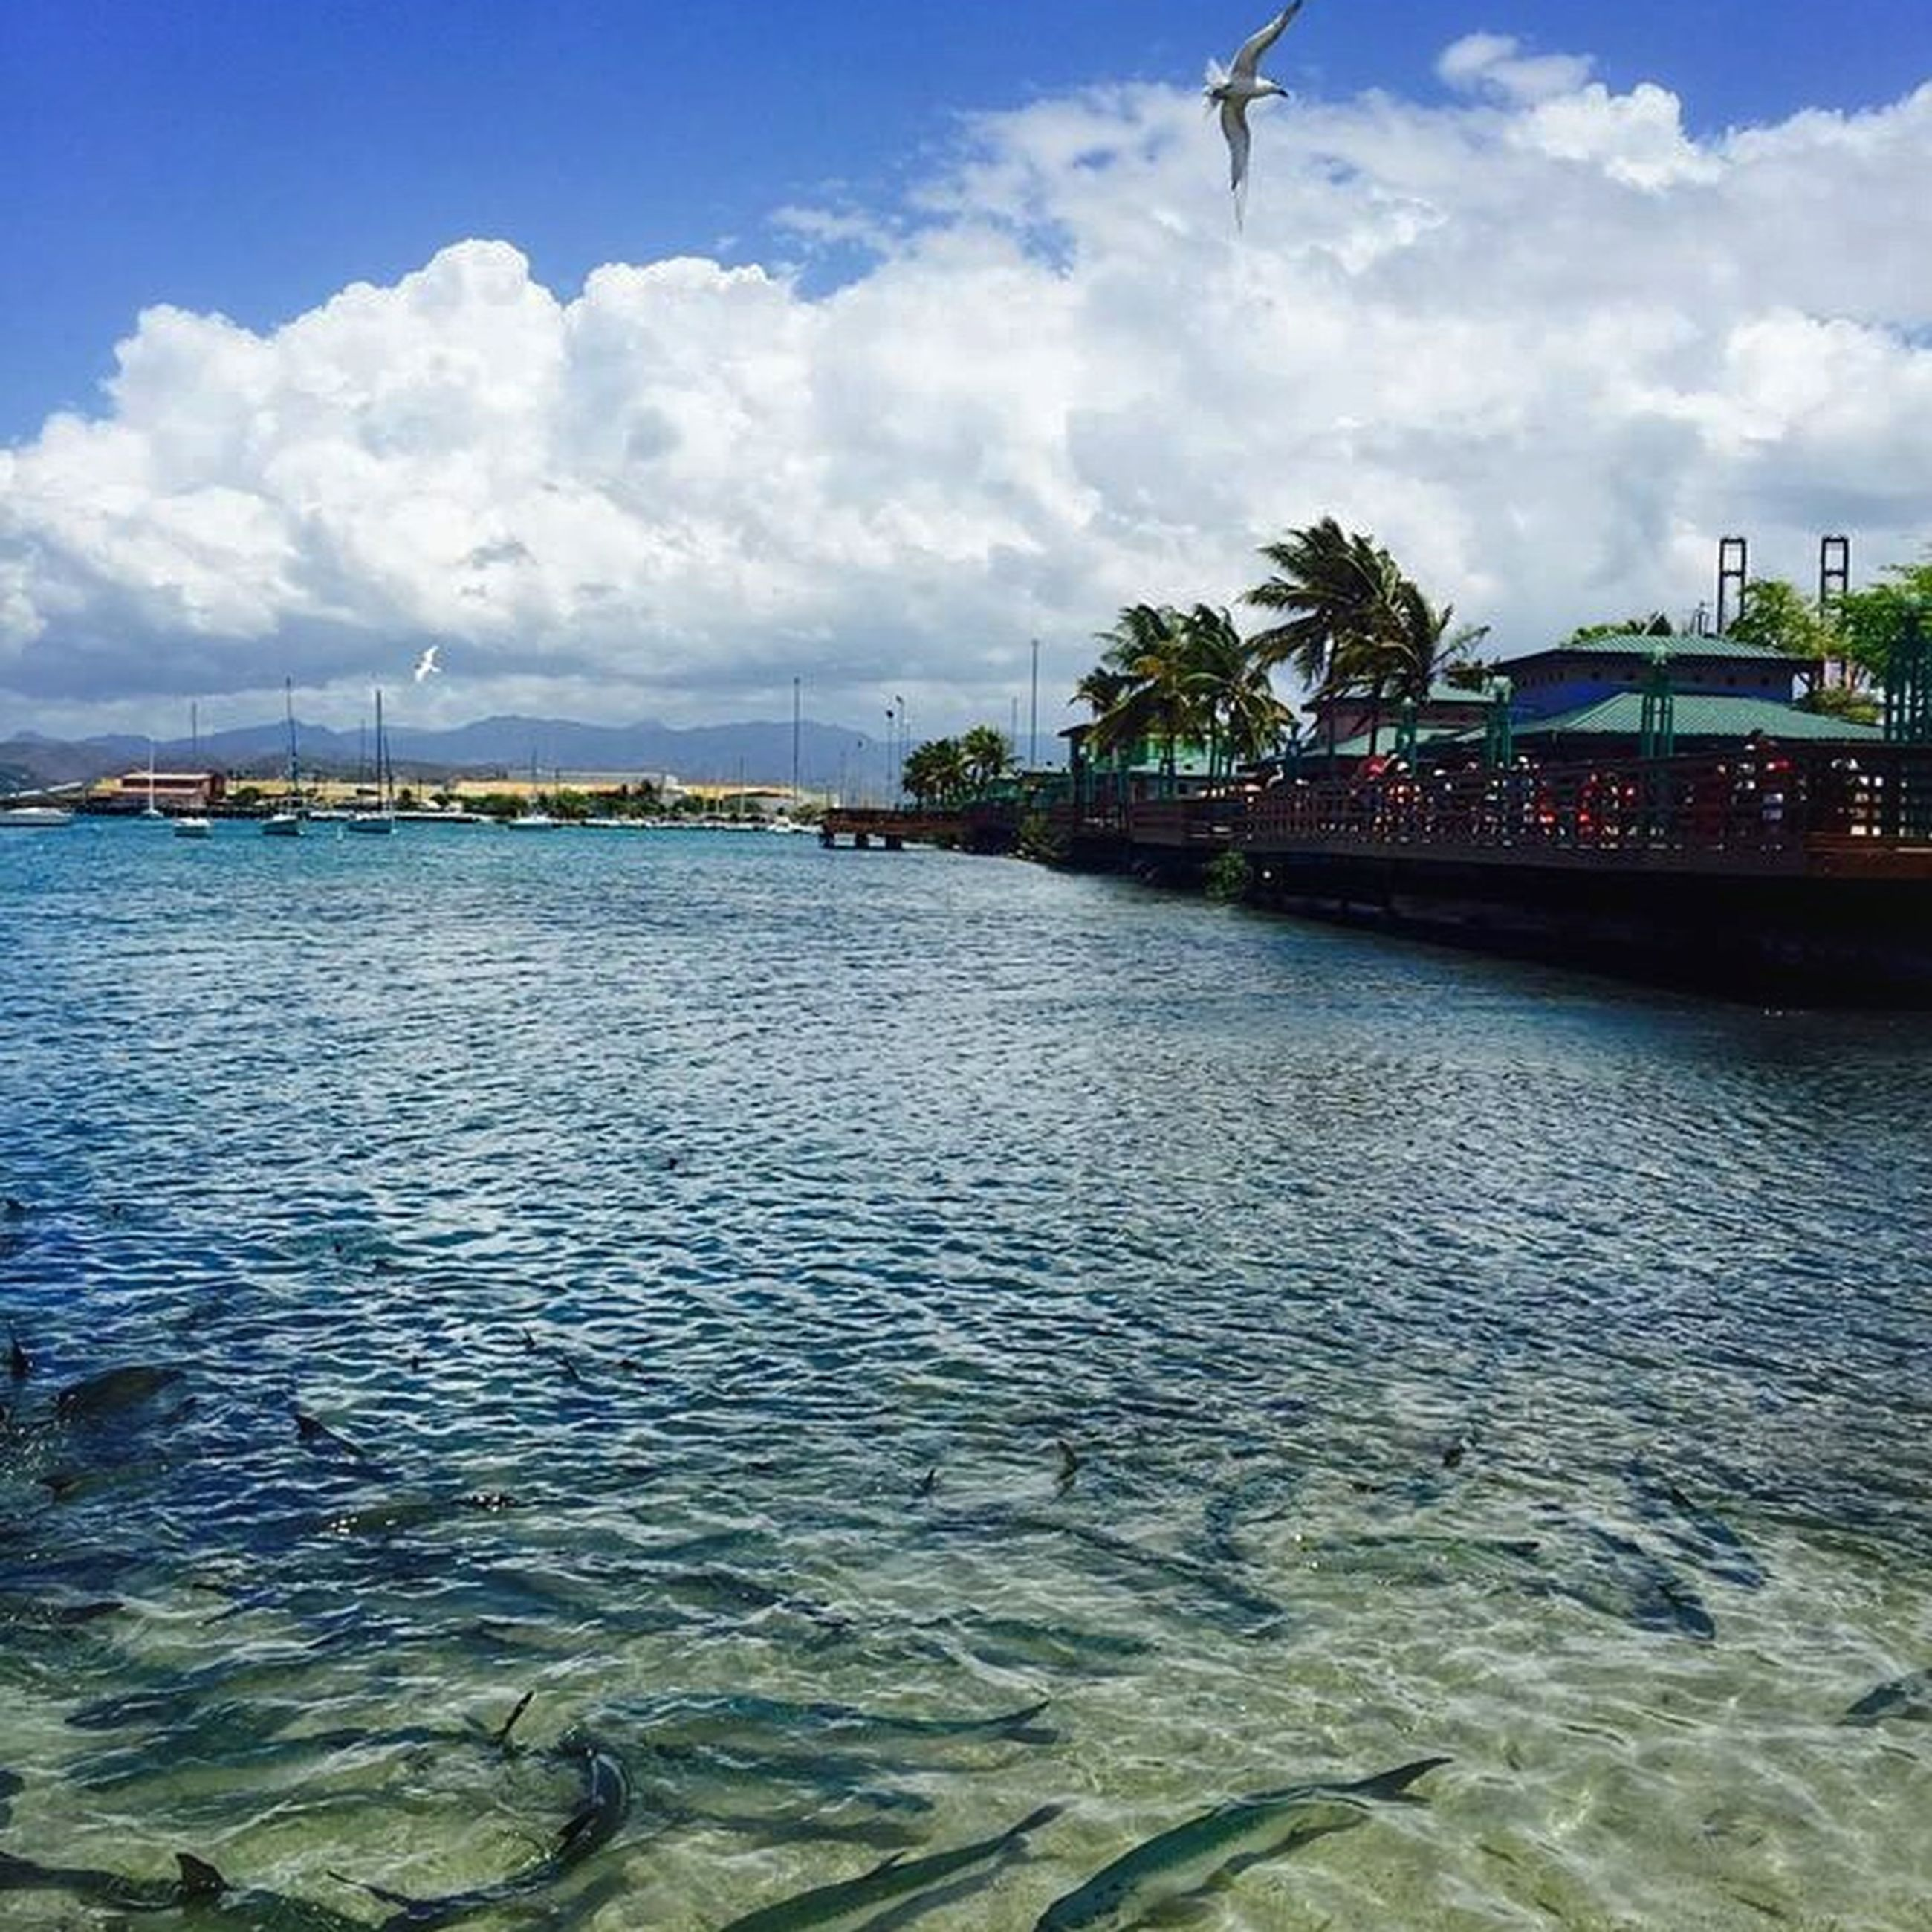 water, sky, cloud - sky, cloud, cloudy, sea, built structure, waterfront, rippled, architecture, river, building exterior, transportation, nature, scenics, blue, city, tranquility, day, tranquil scene